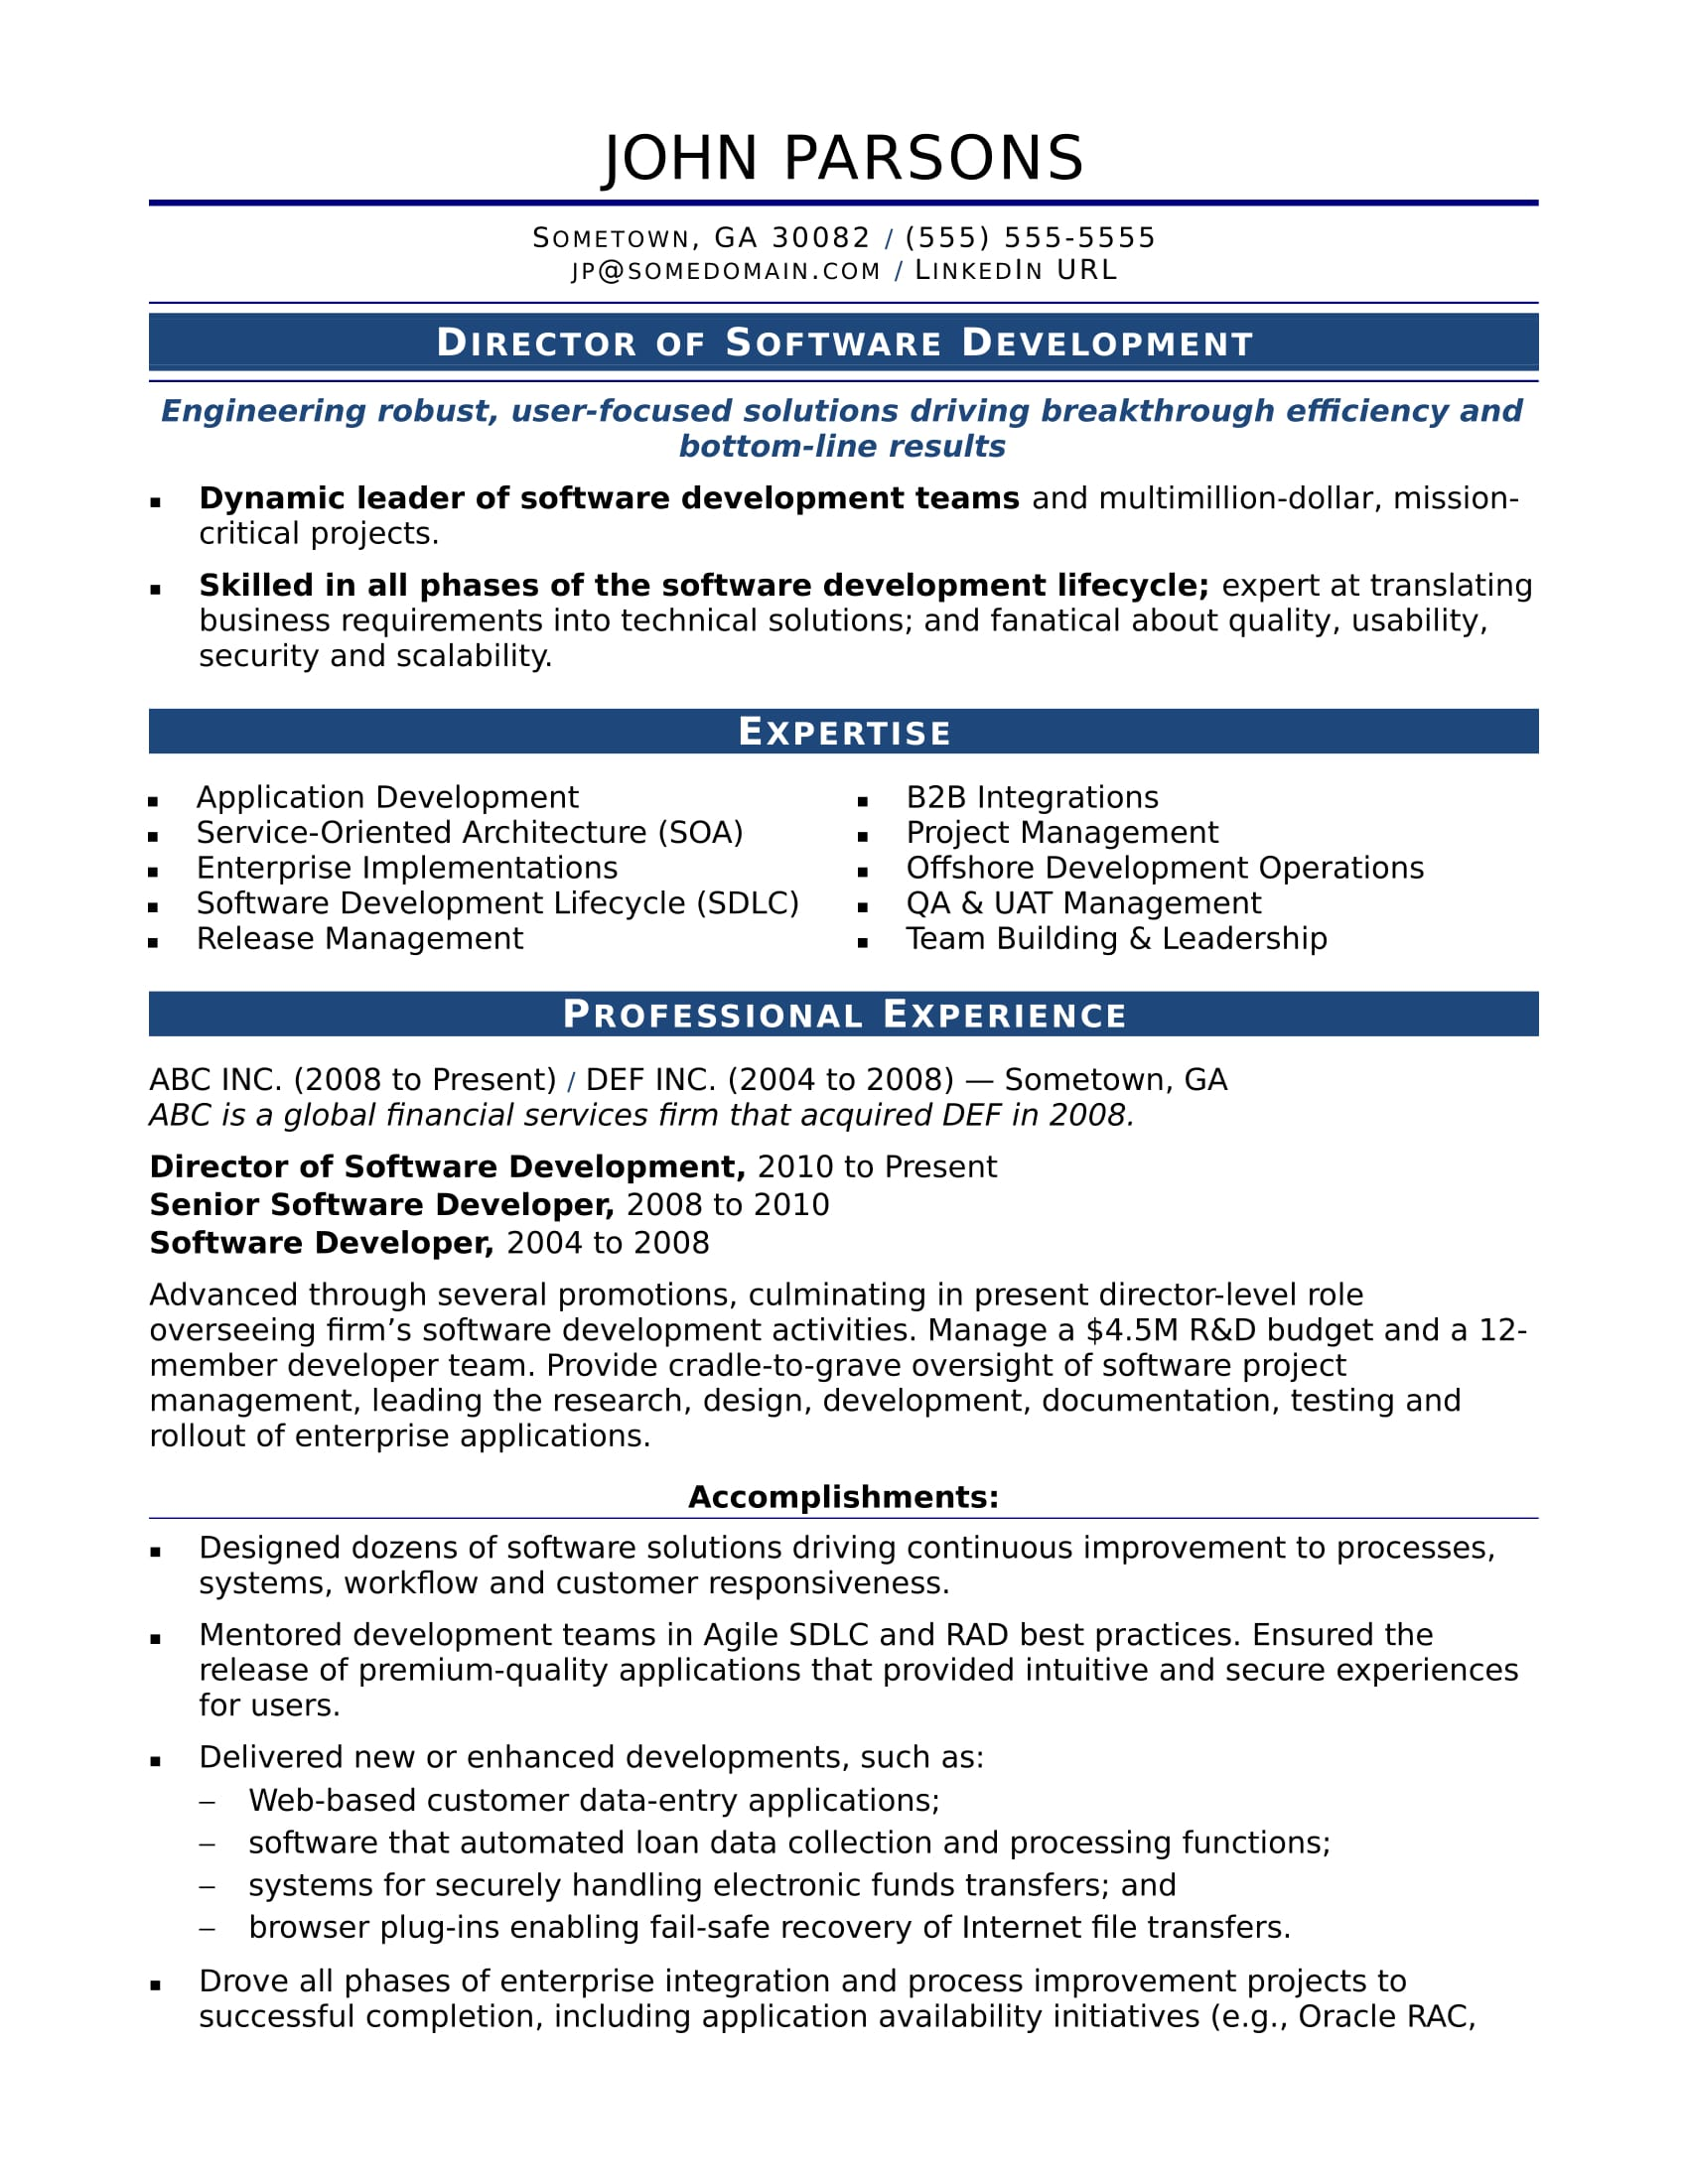 Sample Resume For An Experienced IT Developer  Resume Software Developer